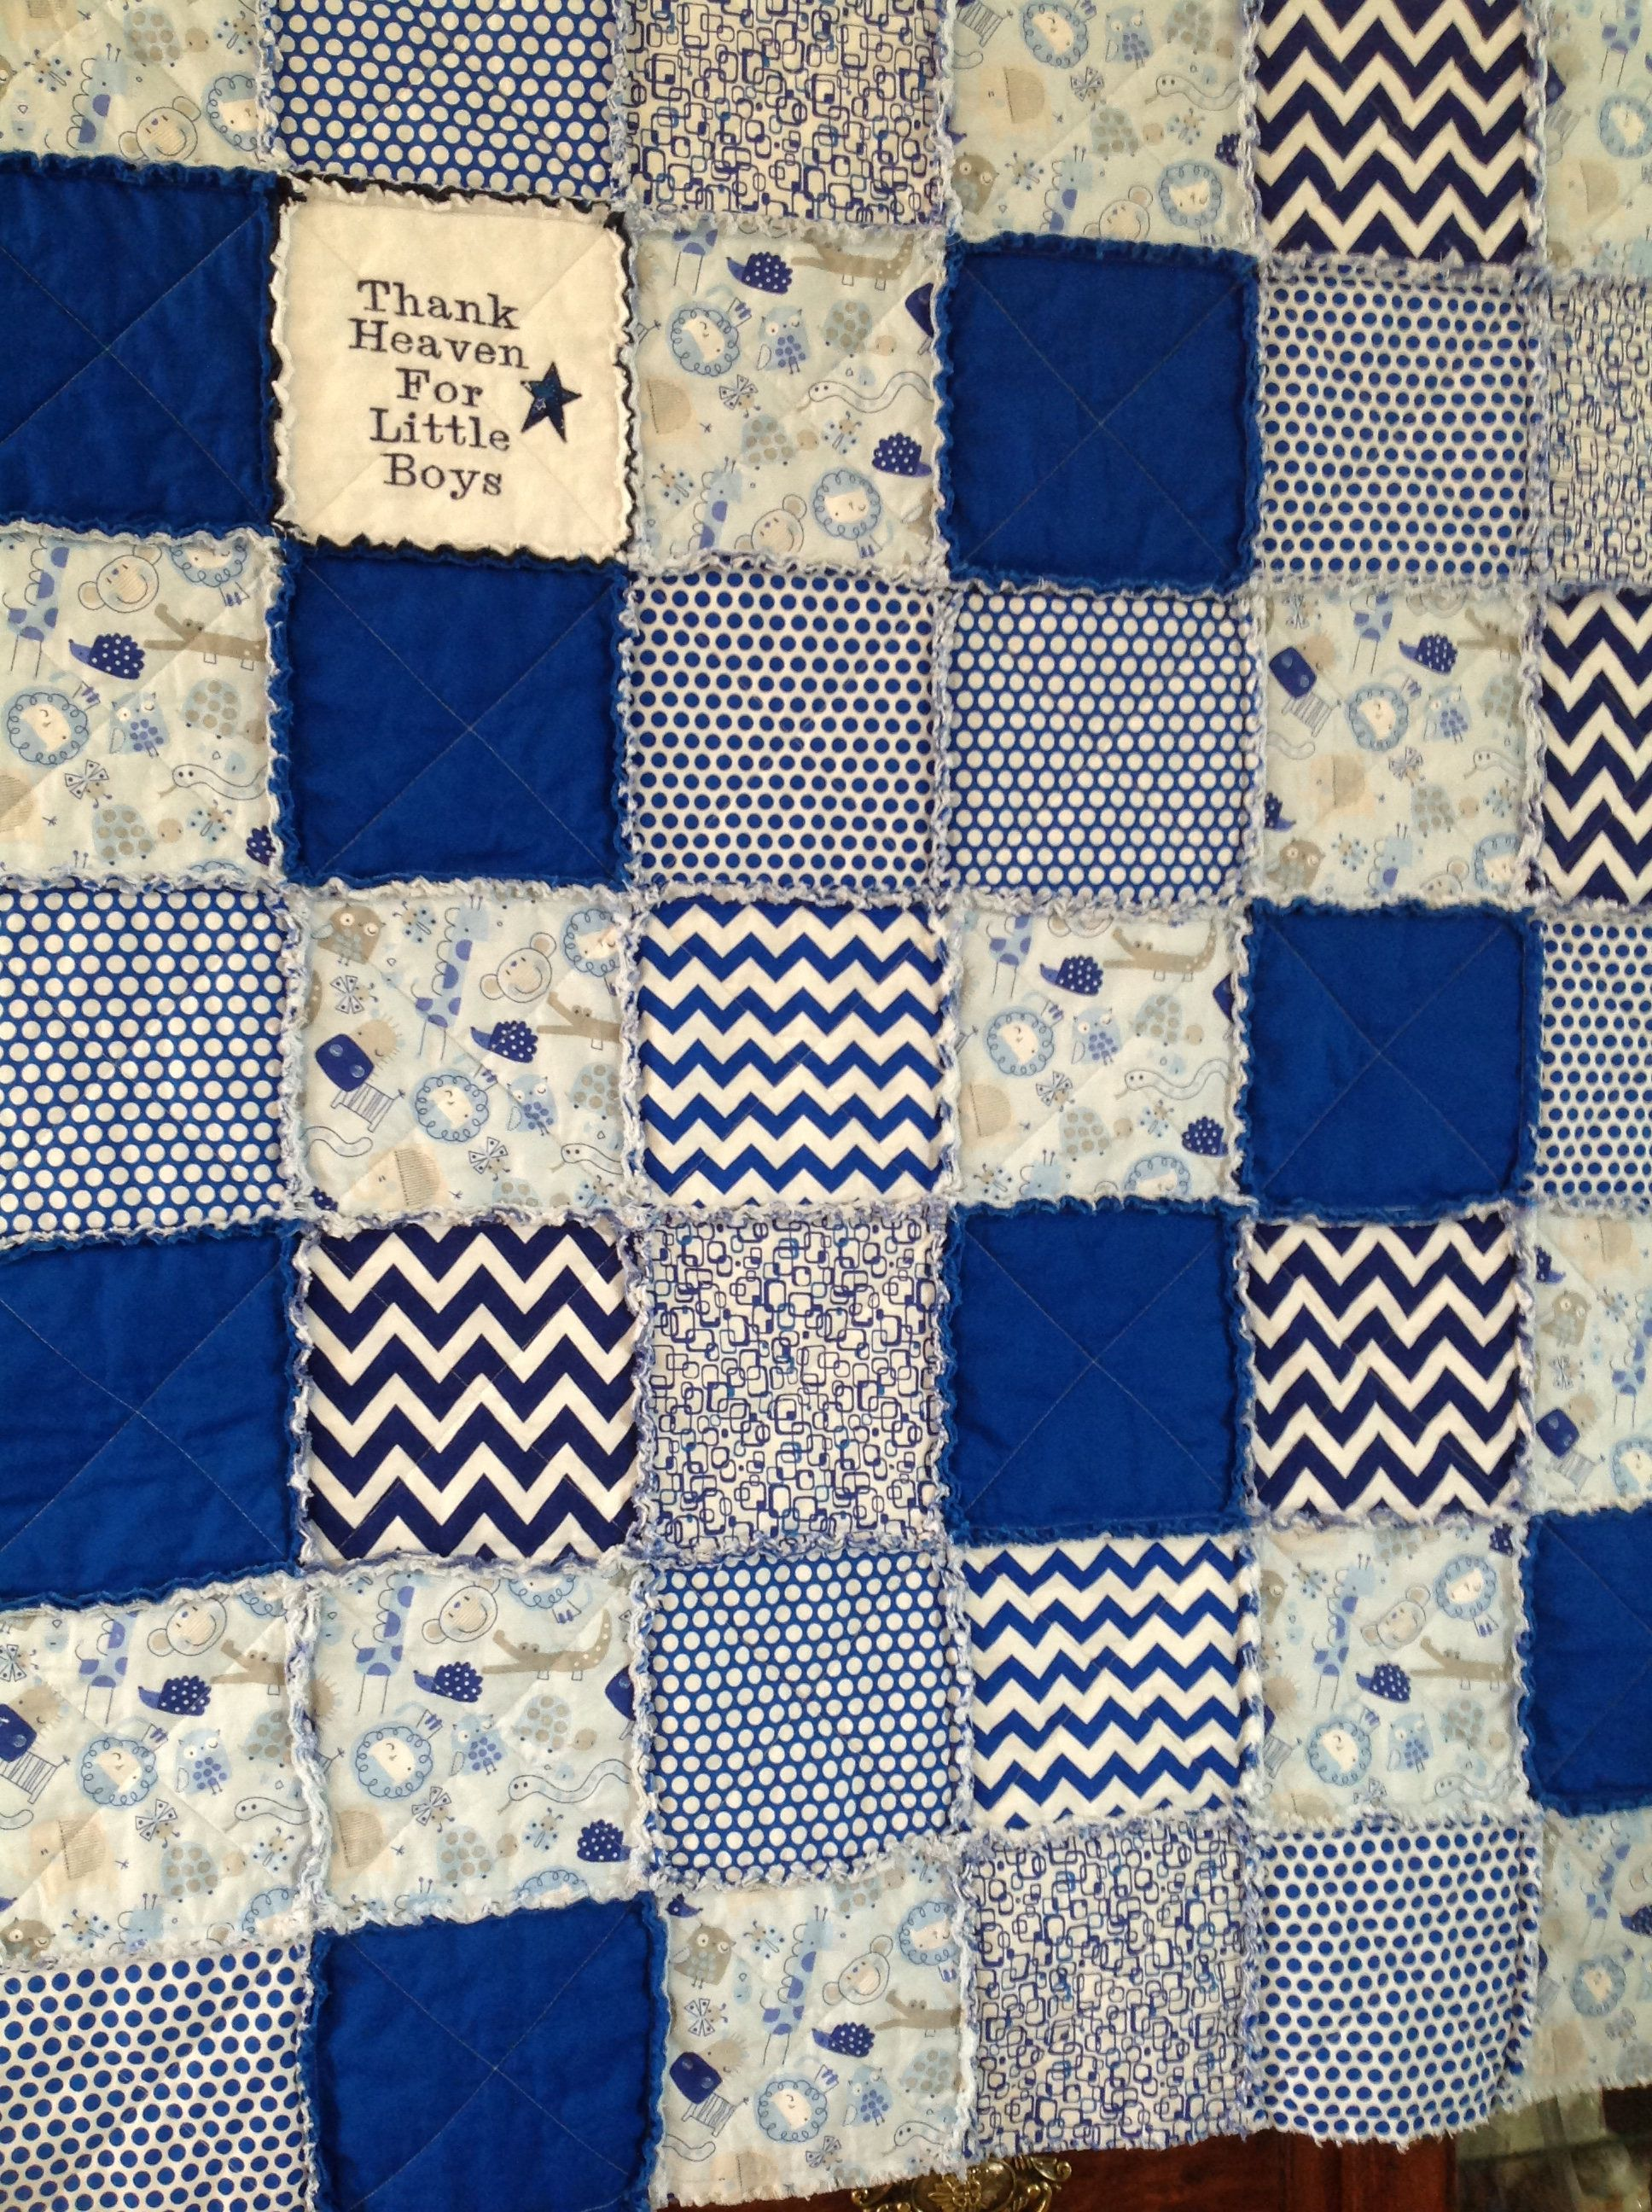 Baby Boy Quilt, Royal Blue, White, Baby Boy Rag Quilt, Handmade ... : handmade baby boy quilts - Adamdwight.com